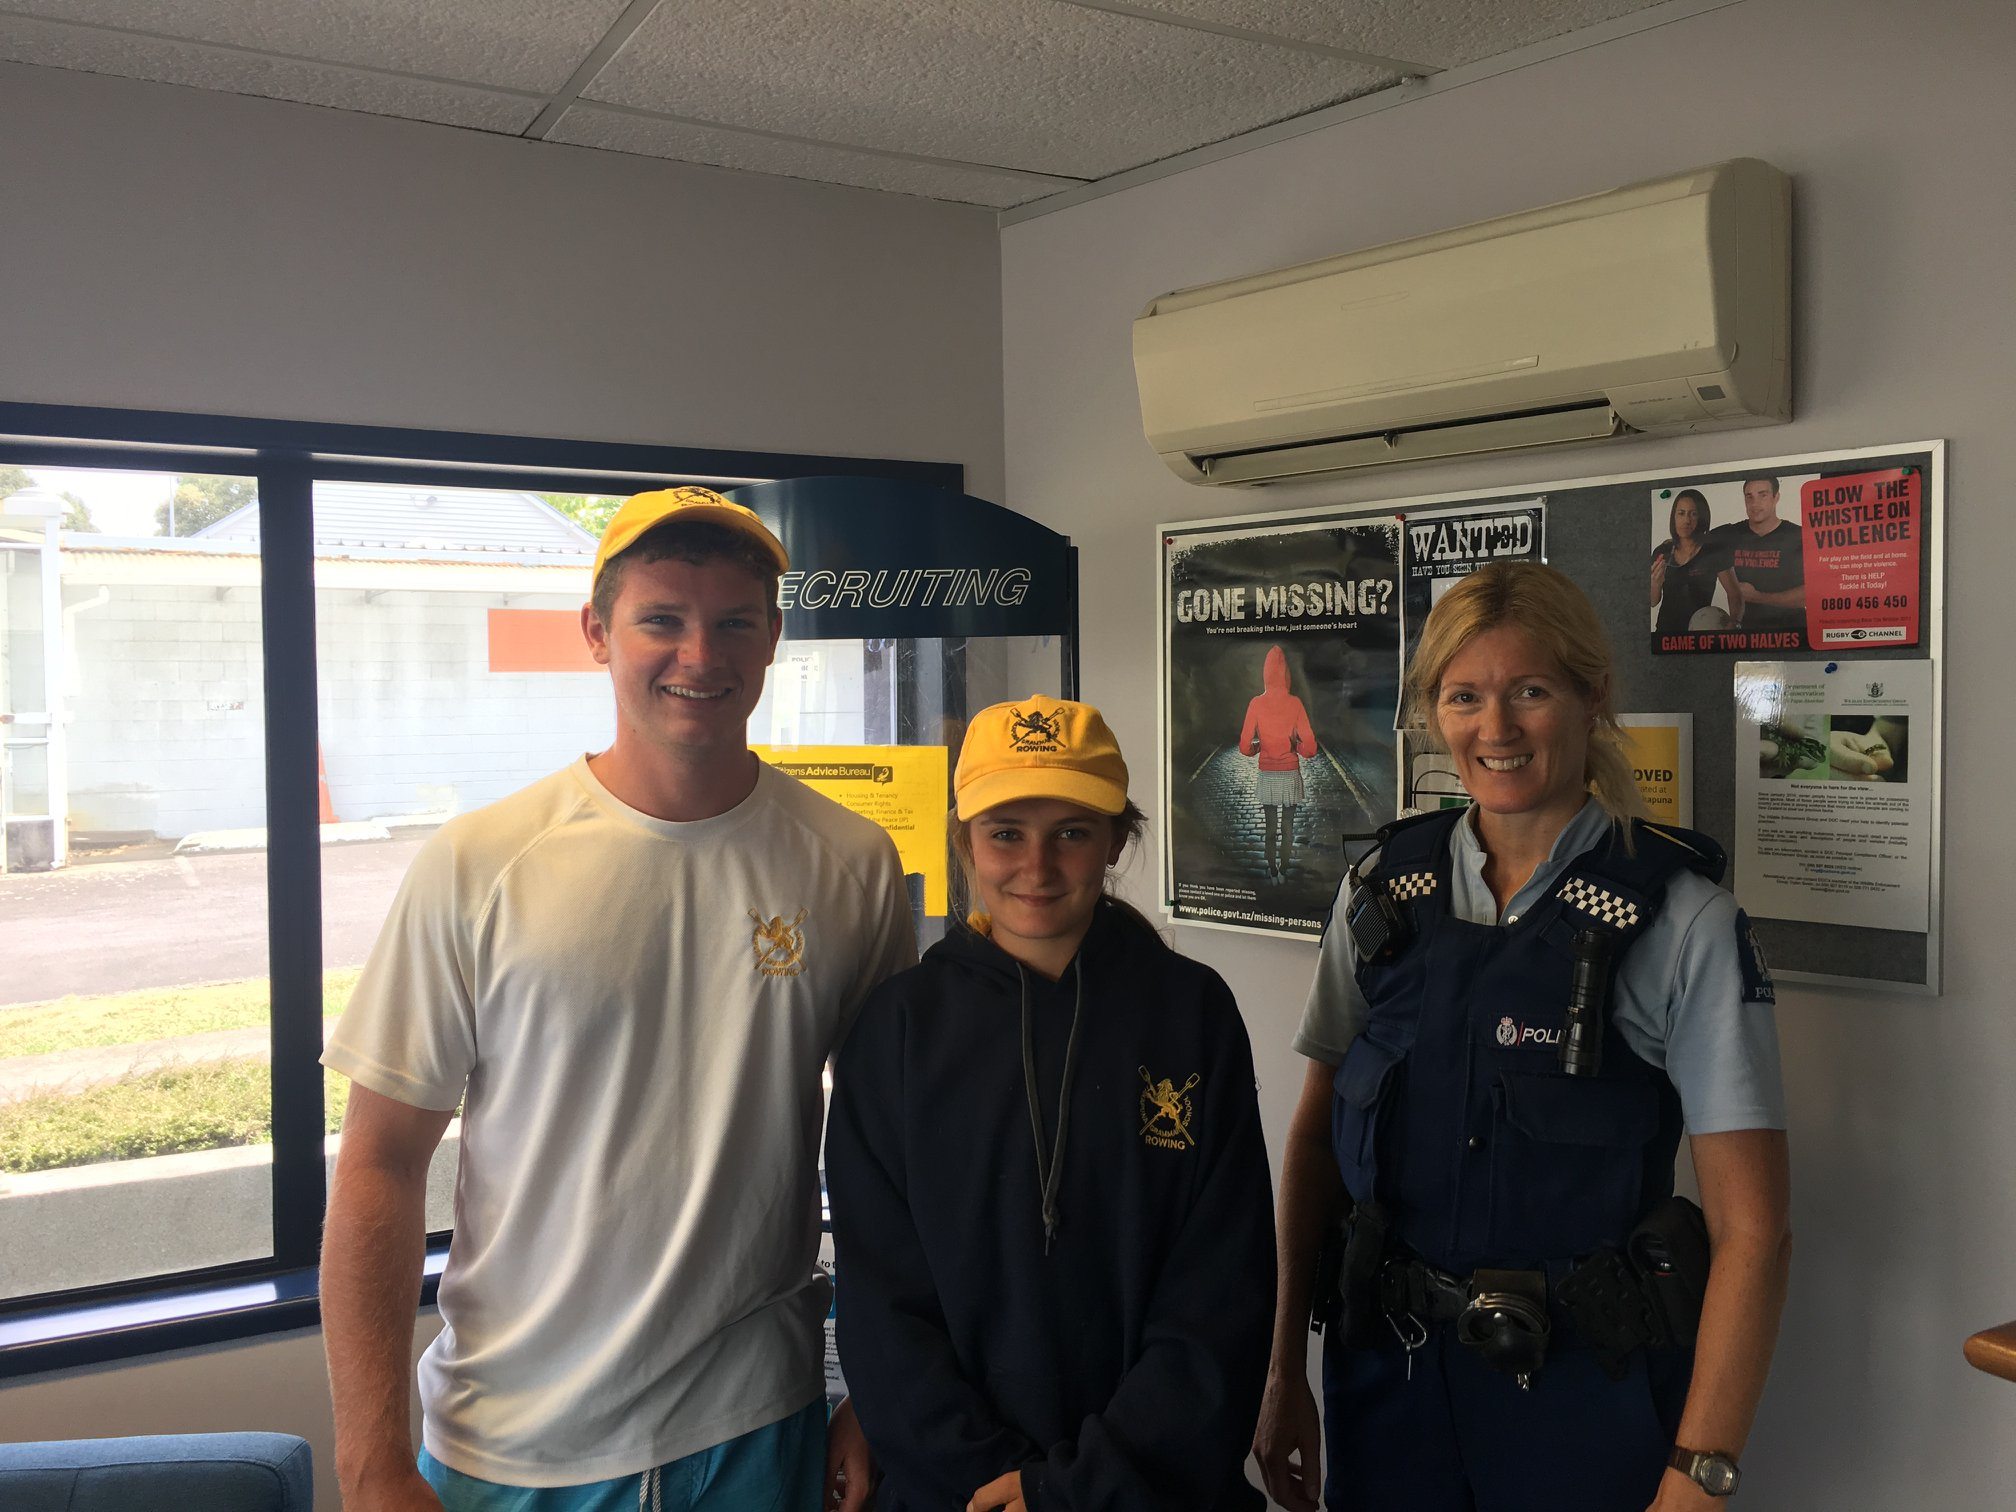 Thank you to everyone who bought a raffle ticket over the past few months, supporting the club to invest in a new boat for our wonderful crews to train and compete in. Our Club Captains Jess and Jack popped down to Takapuna Police Station today to draw and verify our lucky winners. Congratulations and thank you🚣♀️🦁🚣♂️